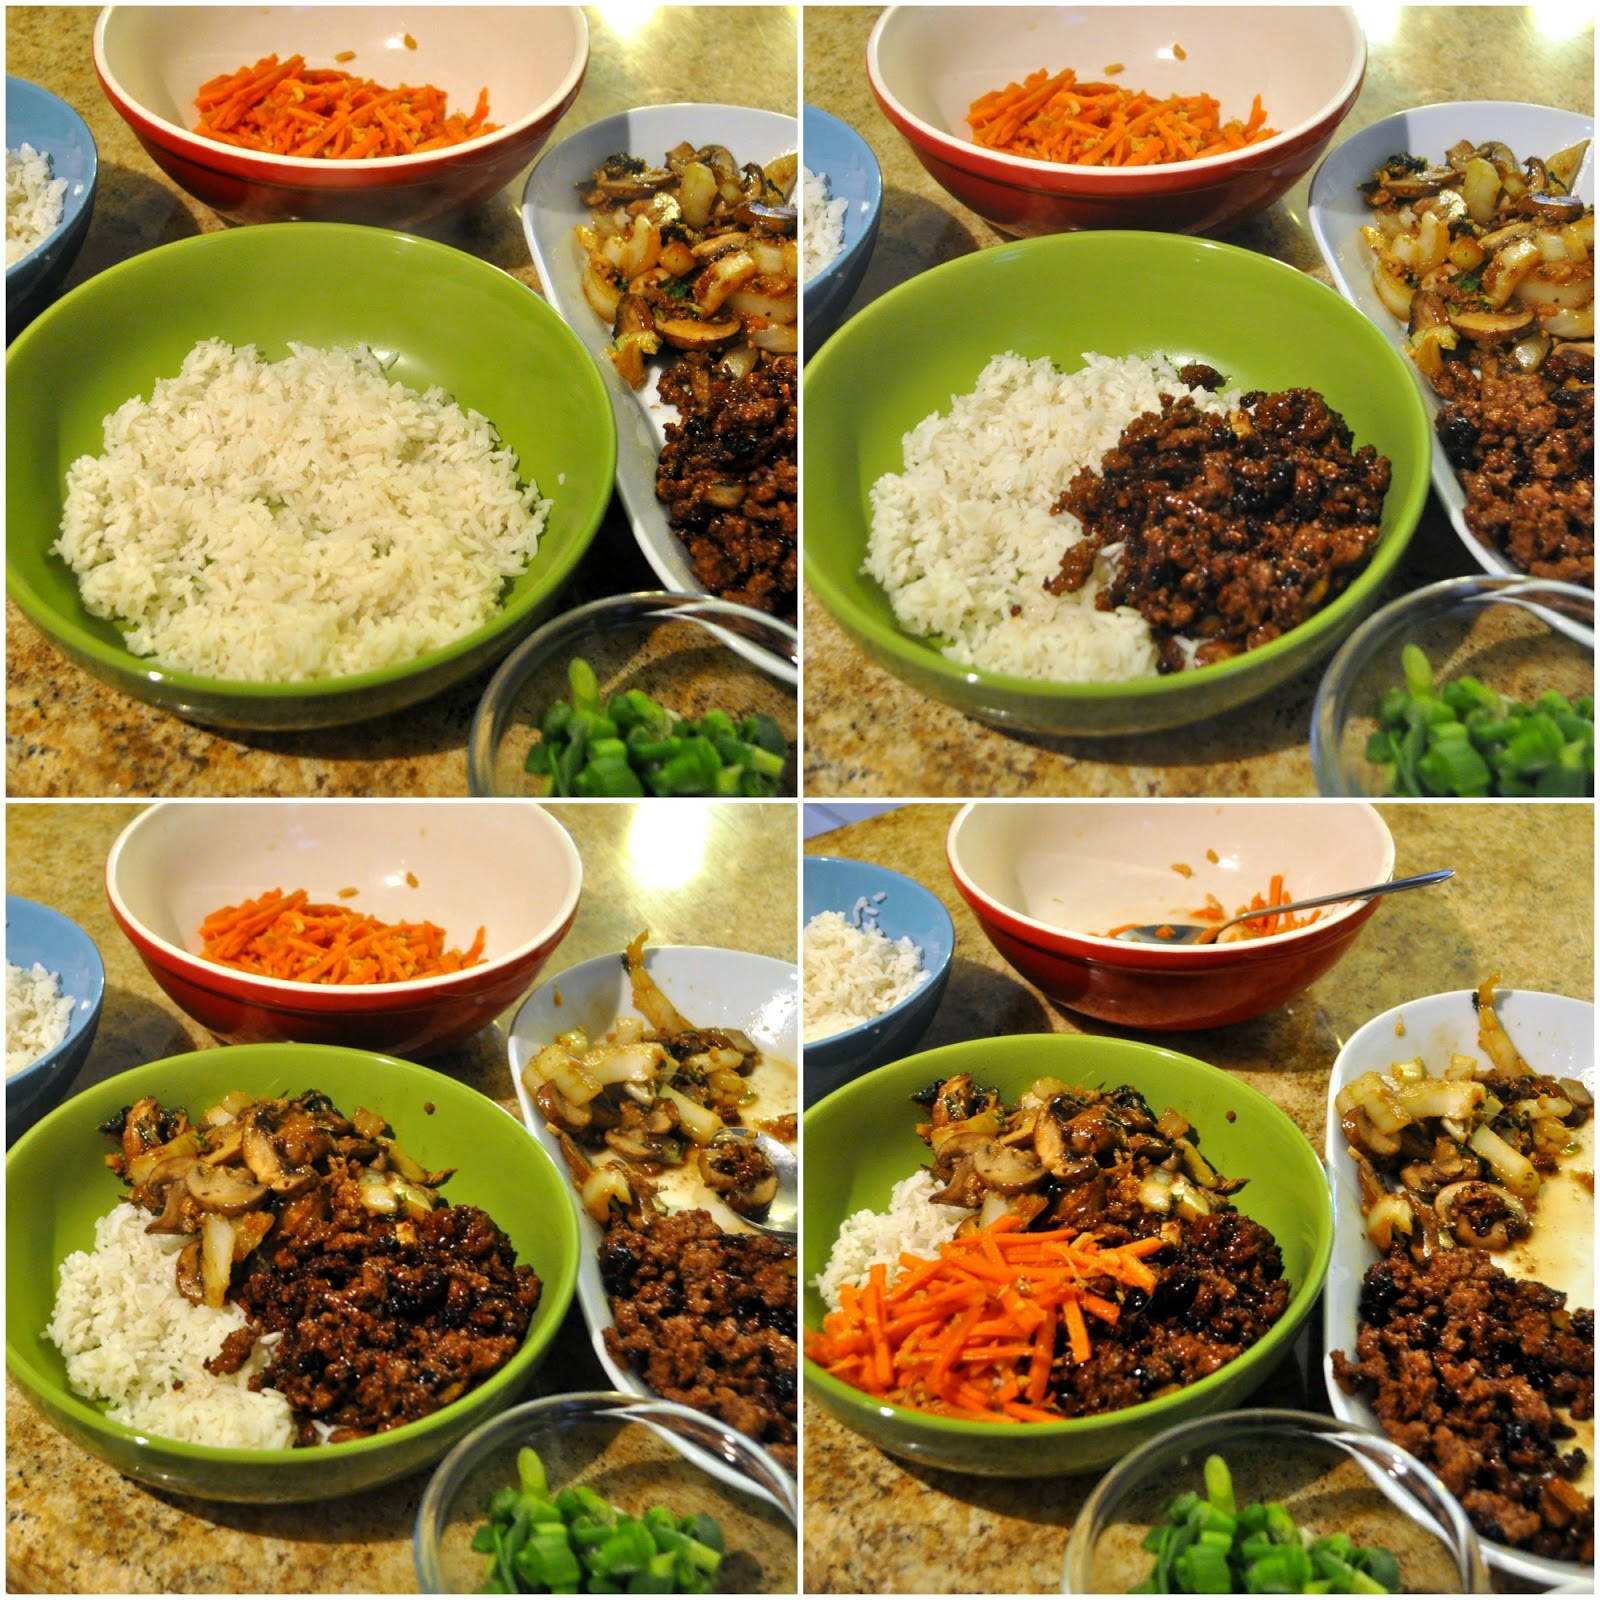 Last Step Is To Put The Bowls Together  Rice  Beef  Veggies  Carrots   Done! You Can Also Add Scallions And Sriracha To The Dish  I Went Very